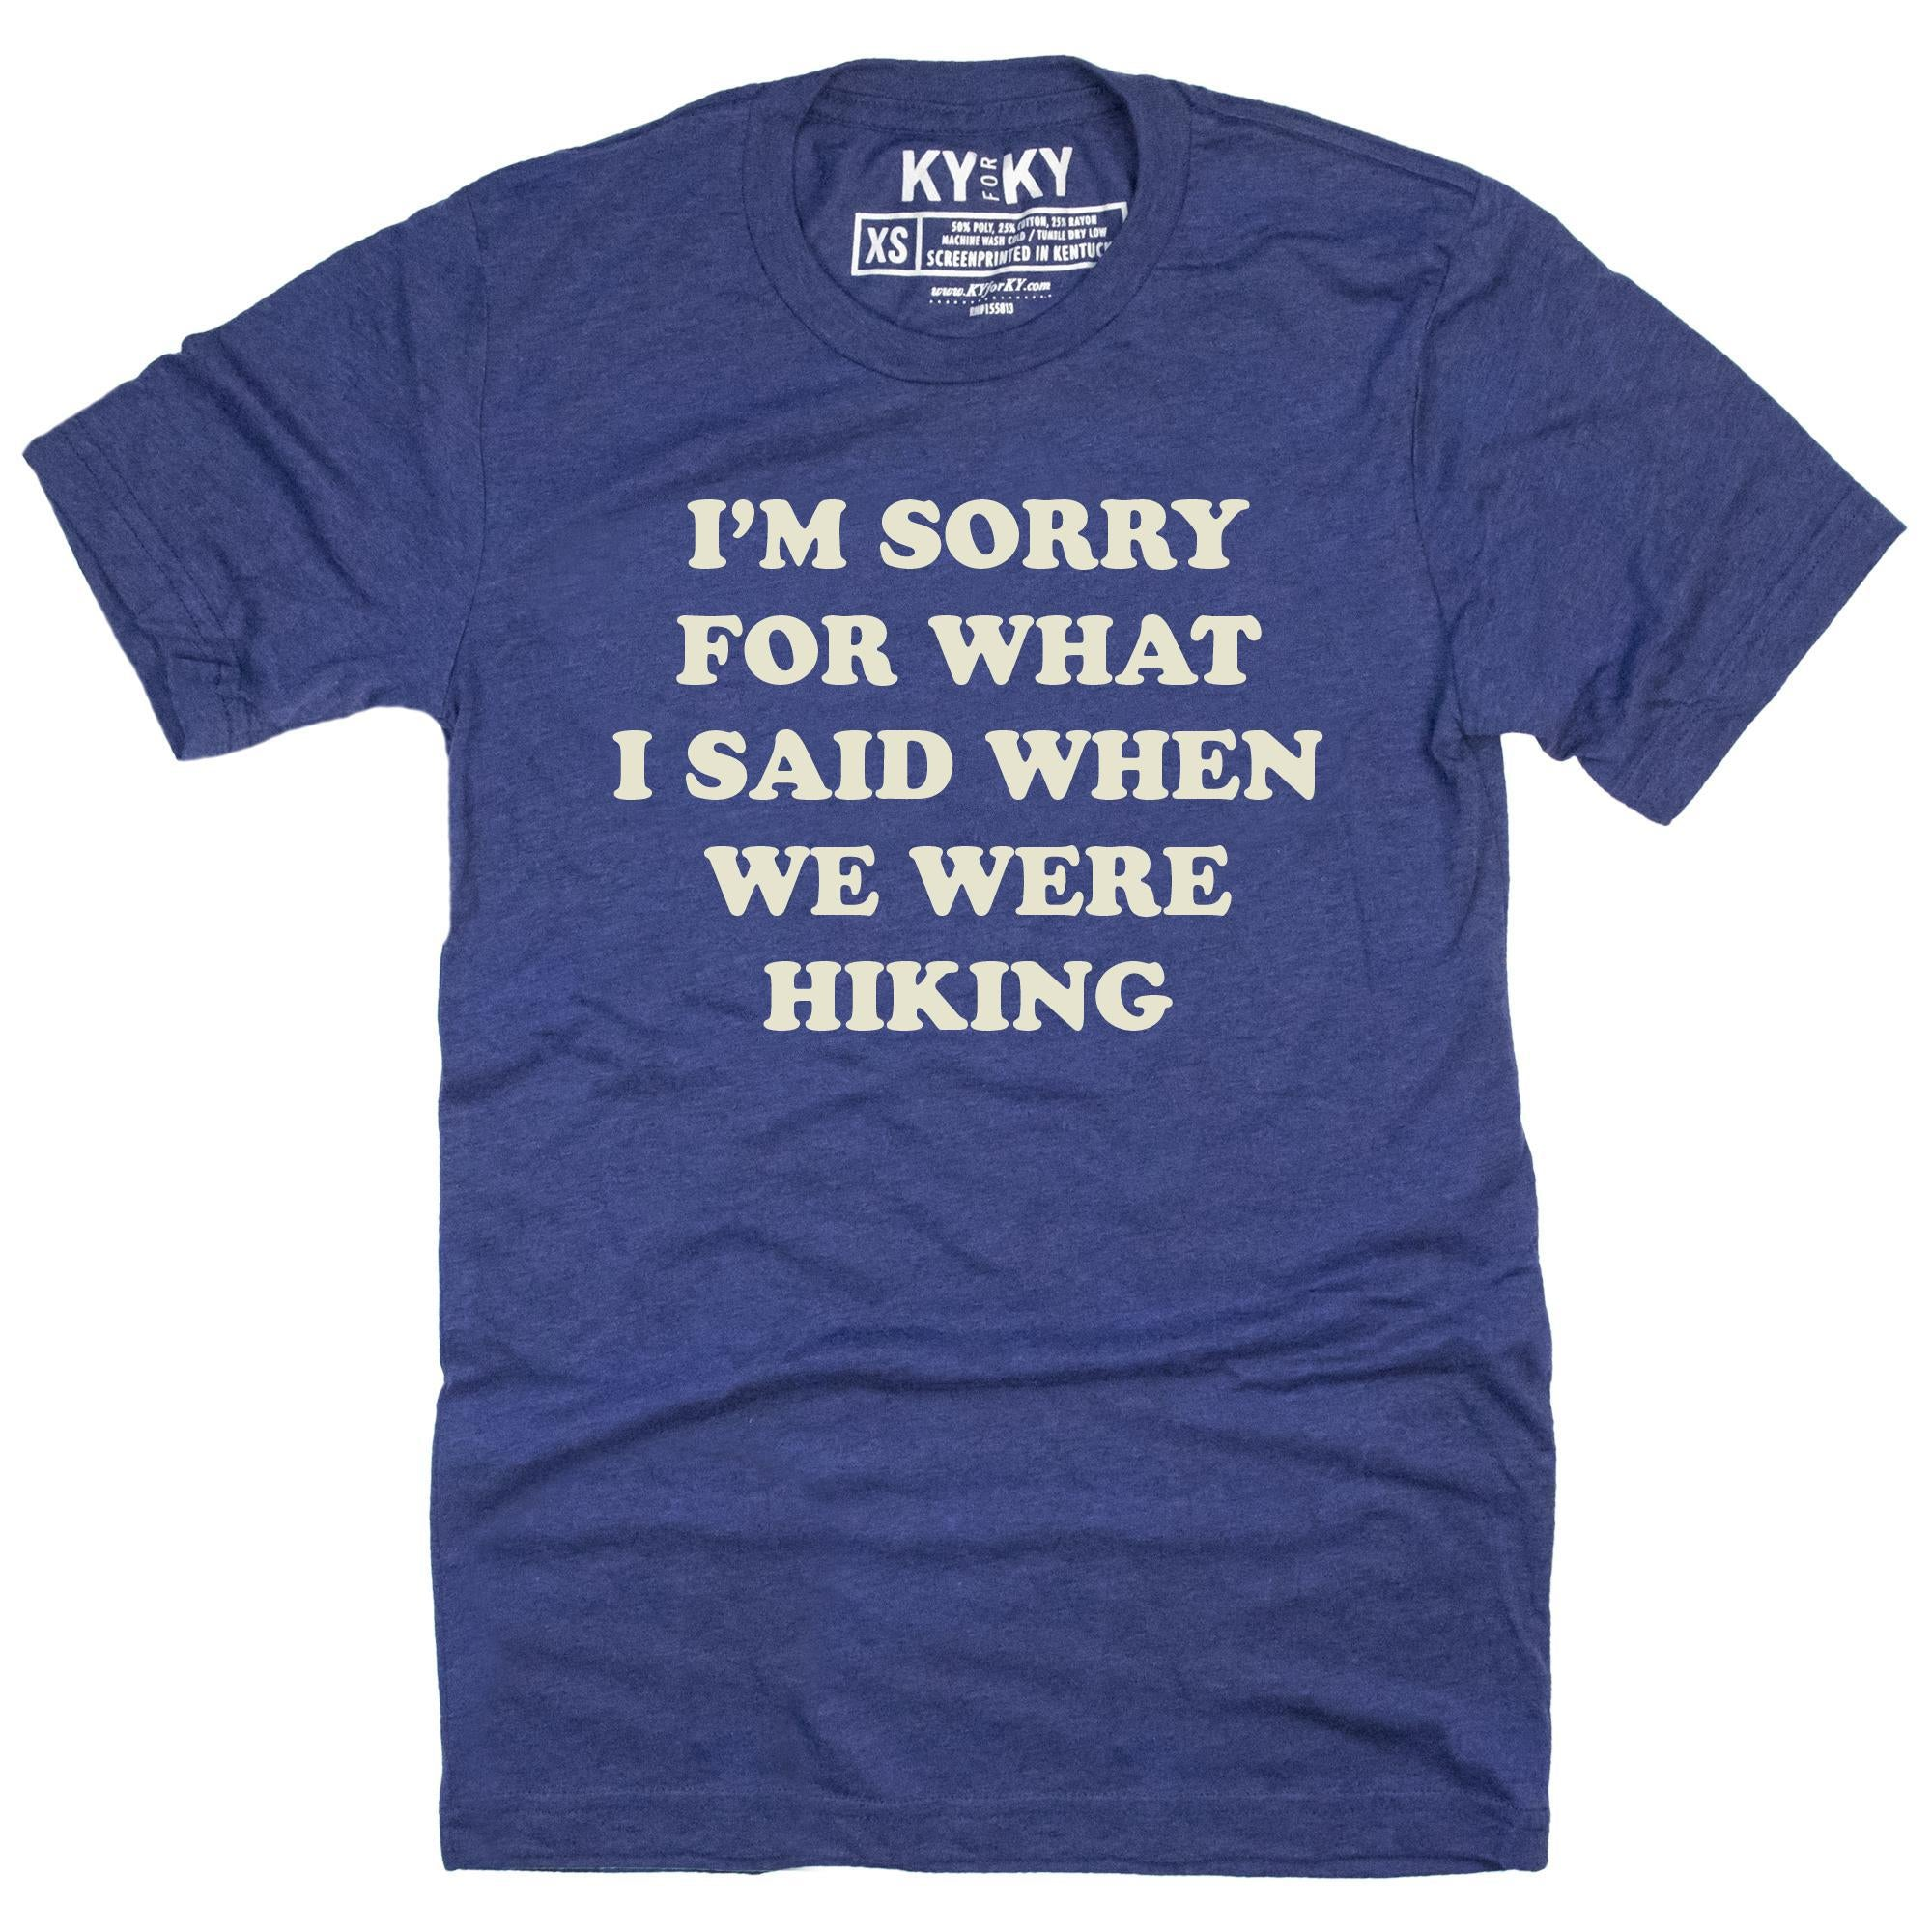 When We Were Hiking T-Shirt-T-Shirt-KY for KY Store